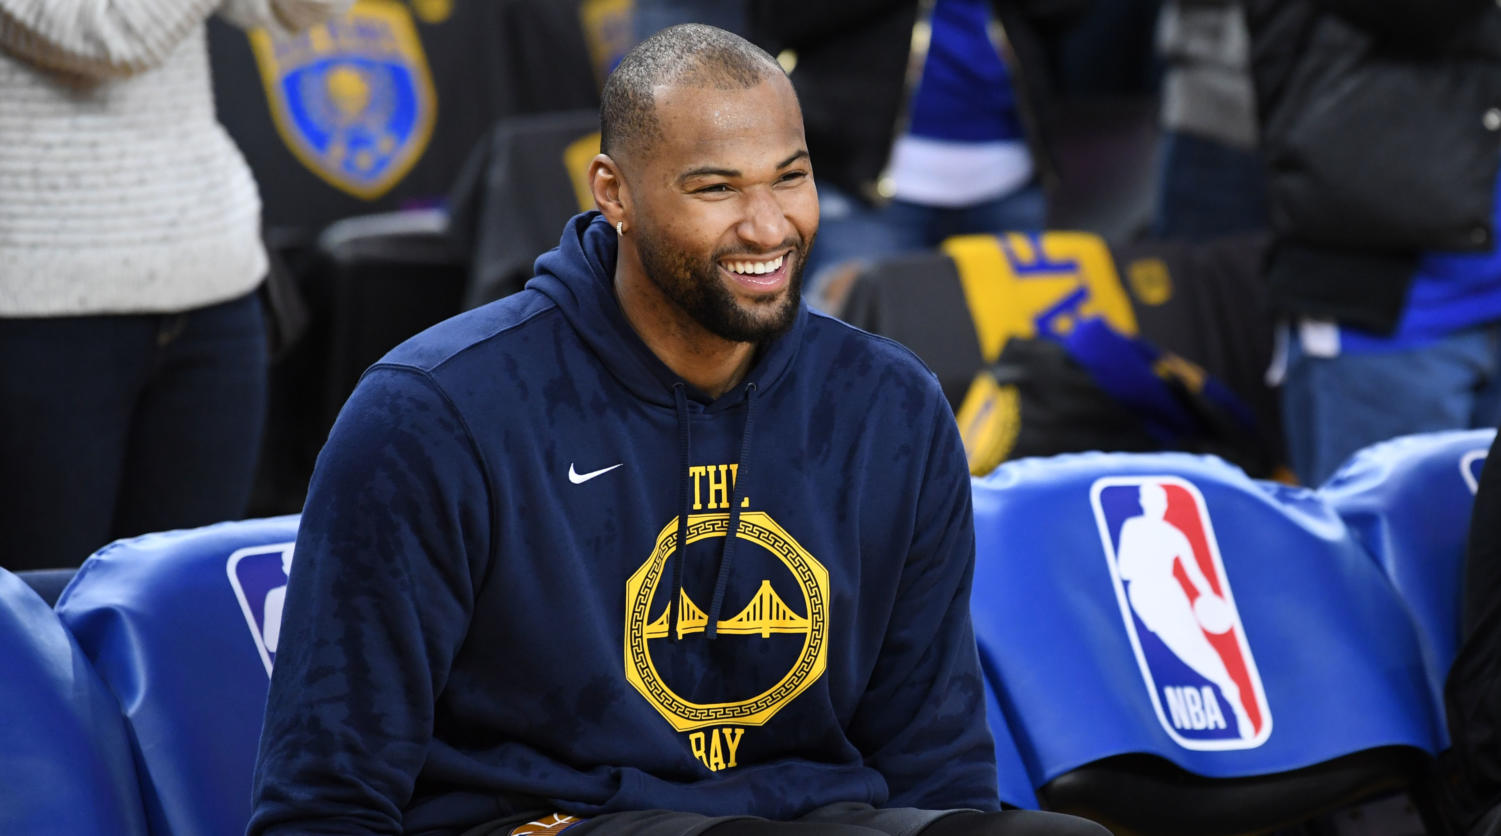 OAKLAND, CA - JANUARY 16: DeMarcus Cousins #0 of the Golden State Warriors laughs prior to a game against the New Orleans Pelicans on January 16, 2019 at ORACLE Arena in Oakland, California. NOTE TO USER: User expressly acknowledges and agrees that, by downloading and or using this photograph, user is consenting to the terms and conditions of Getty Images License Agreement. Mandatory Copyright Notice: Copyright 2019 NBAE (Photo by Noah Graham/NBAE via Getty Images)